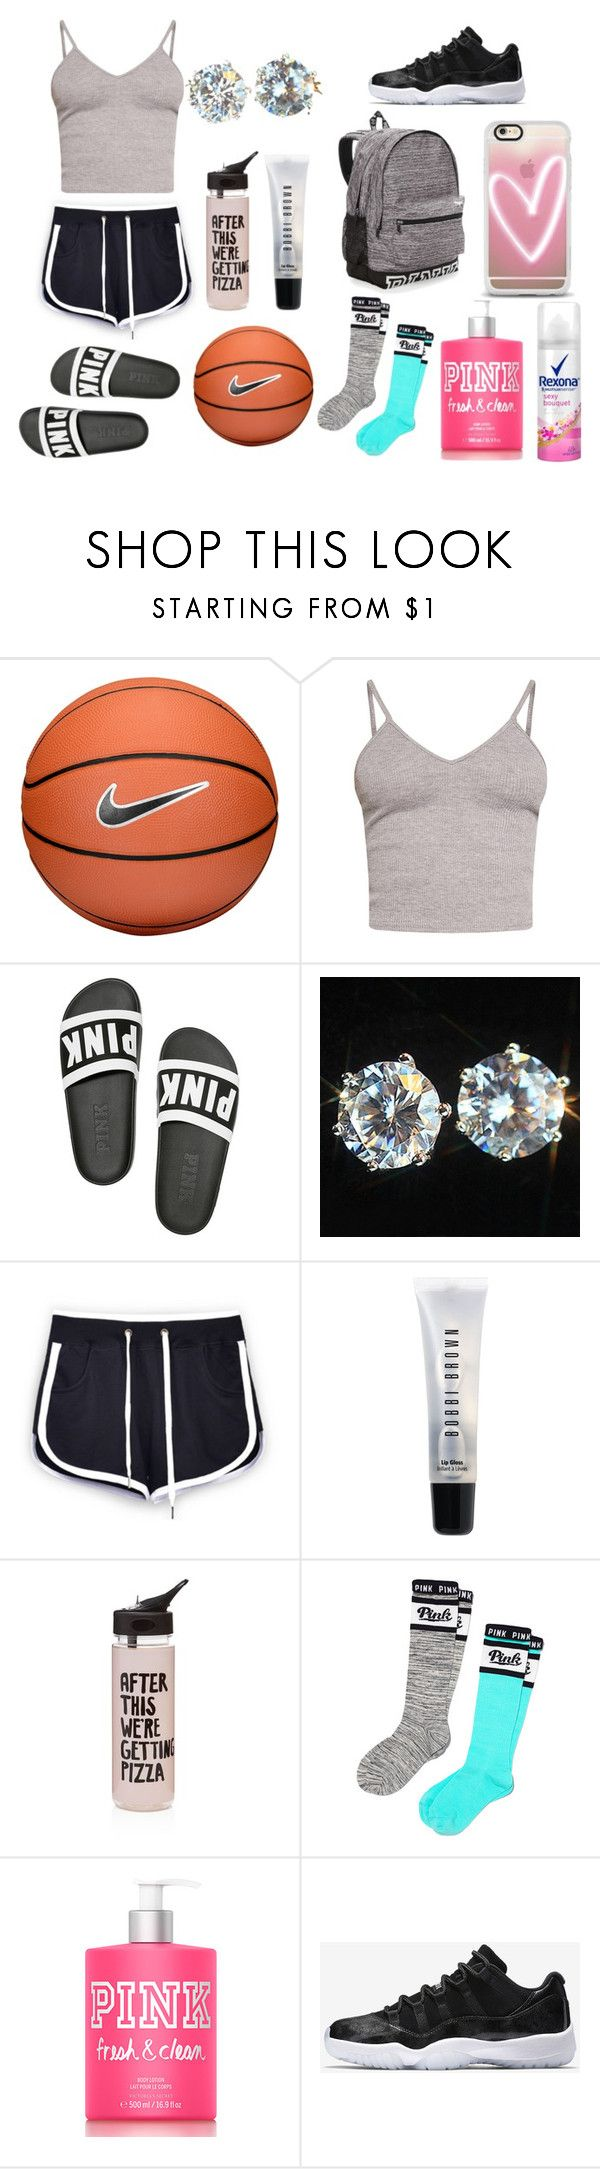 """""""Aiyana inspired #BUGET OF$210"""" by princessaamor on Polyvore featuring NIKE, BasicGrey, Bobbi Brown Cosmetics, ban.do, Victoria's Secret PINK, Victoria's Secret and Casetify"""